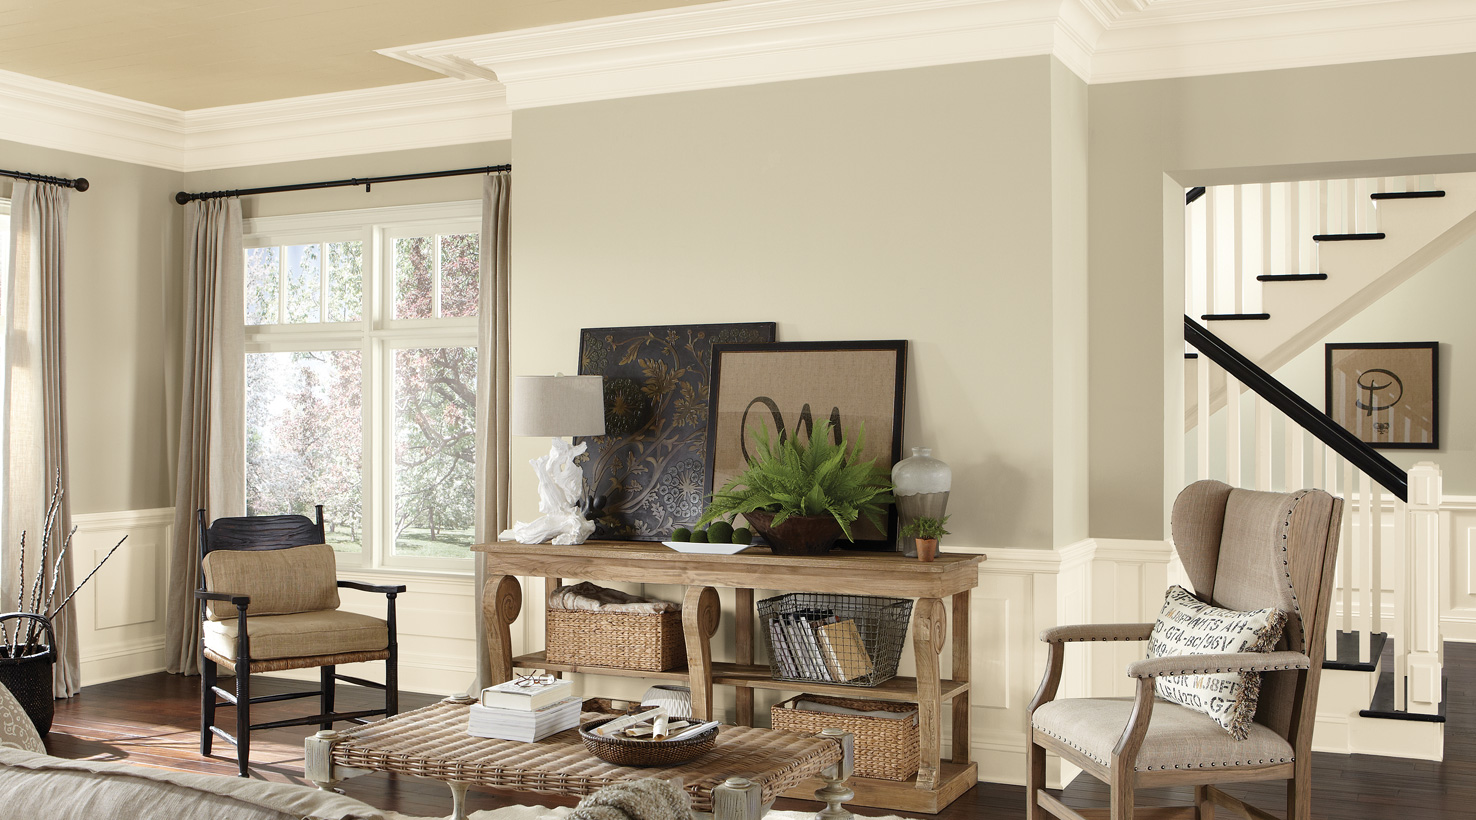 living room color ideas Living Room Paint Color Ideas | Inspiration Gallery | Sherwin Williams living room color ideas